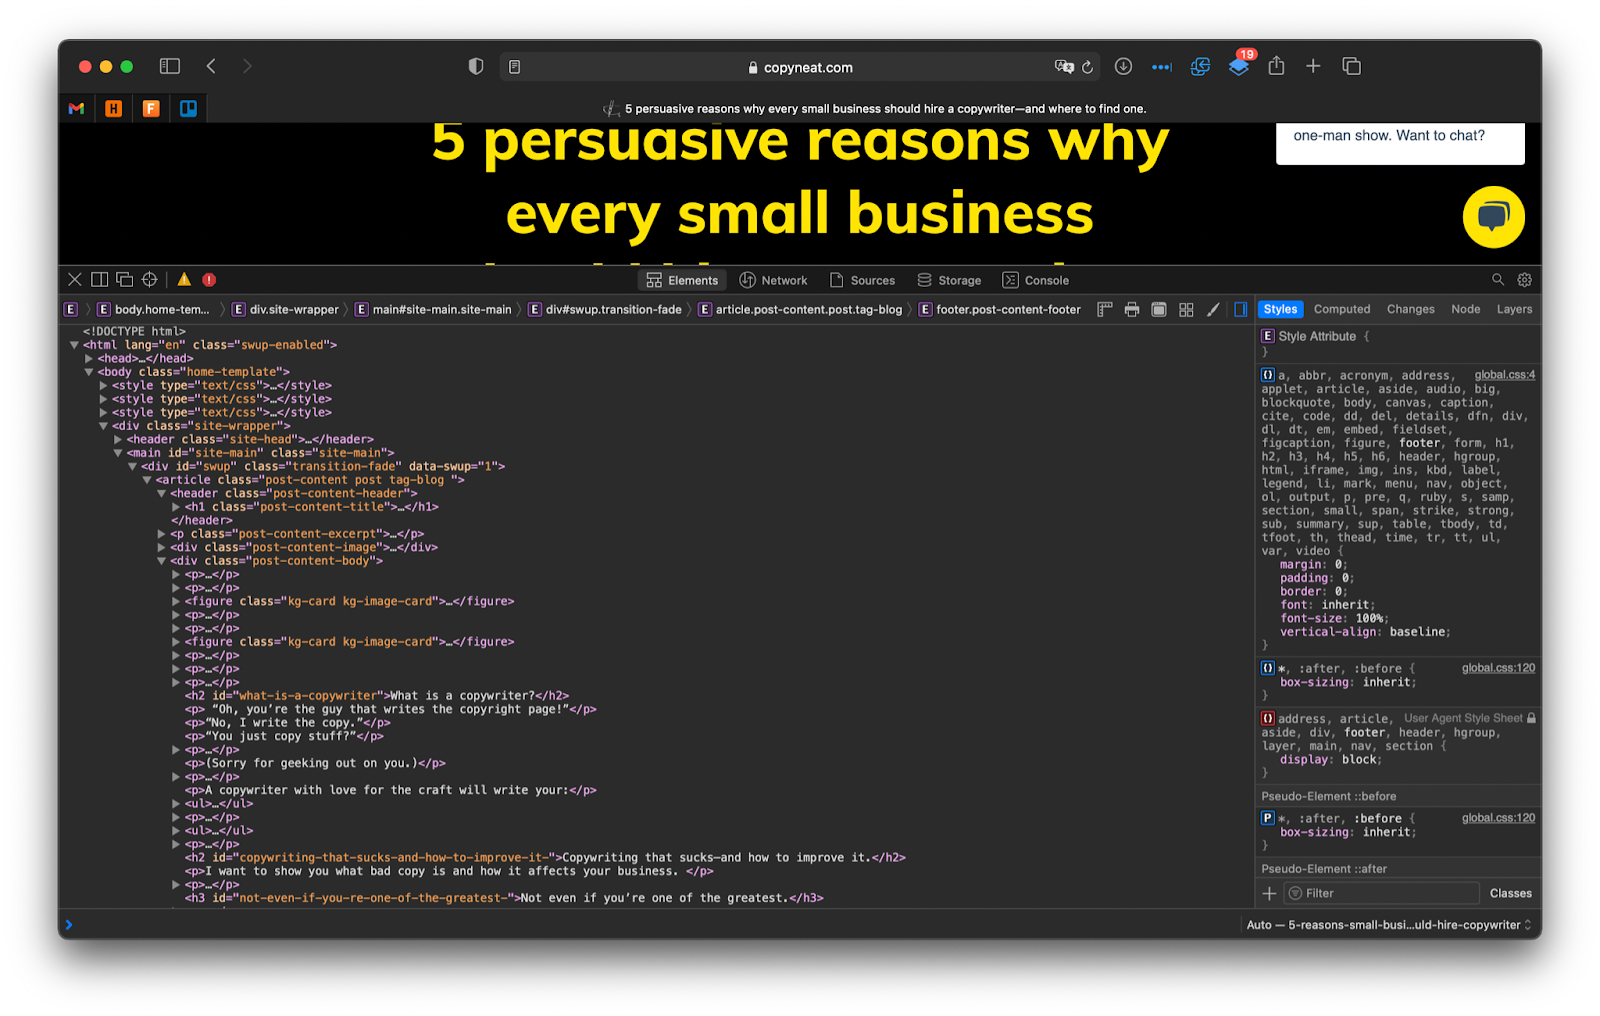 A screenshot of my website and its HTML code displayed in the developer tools to visualize the title tags.